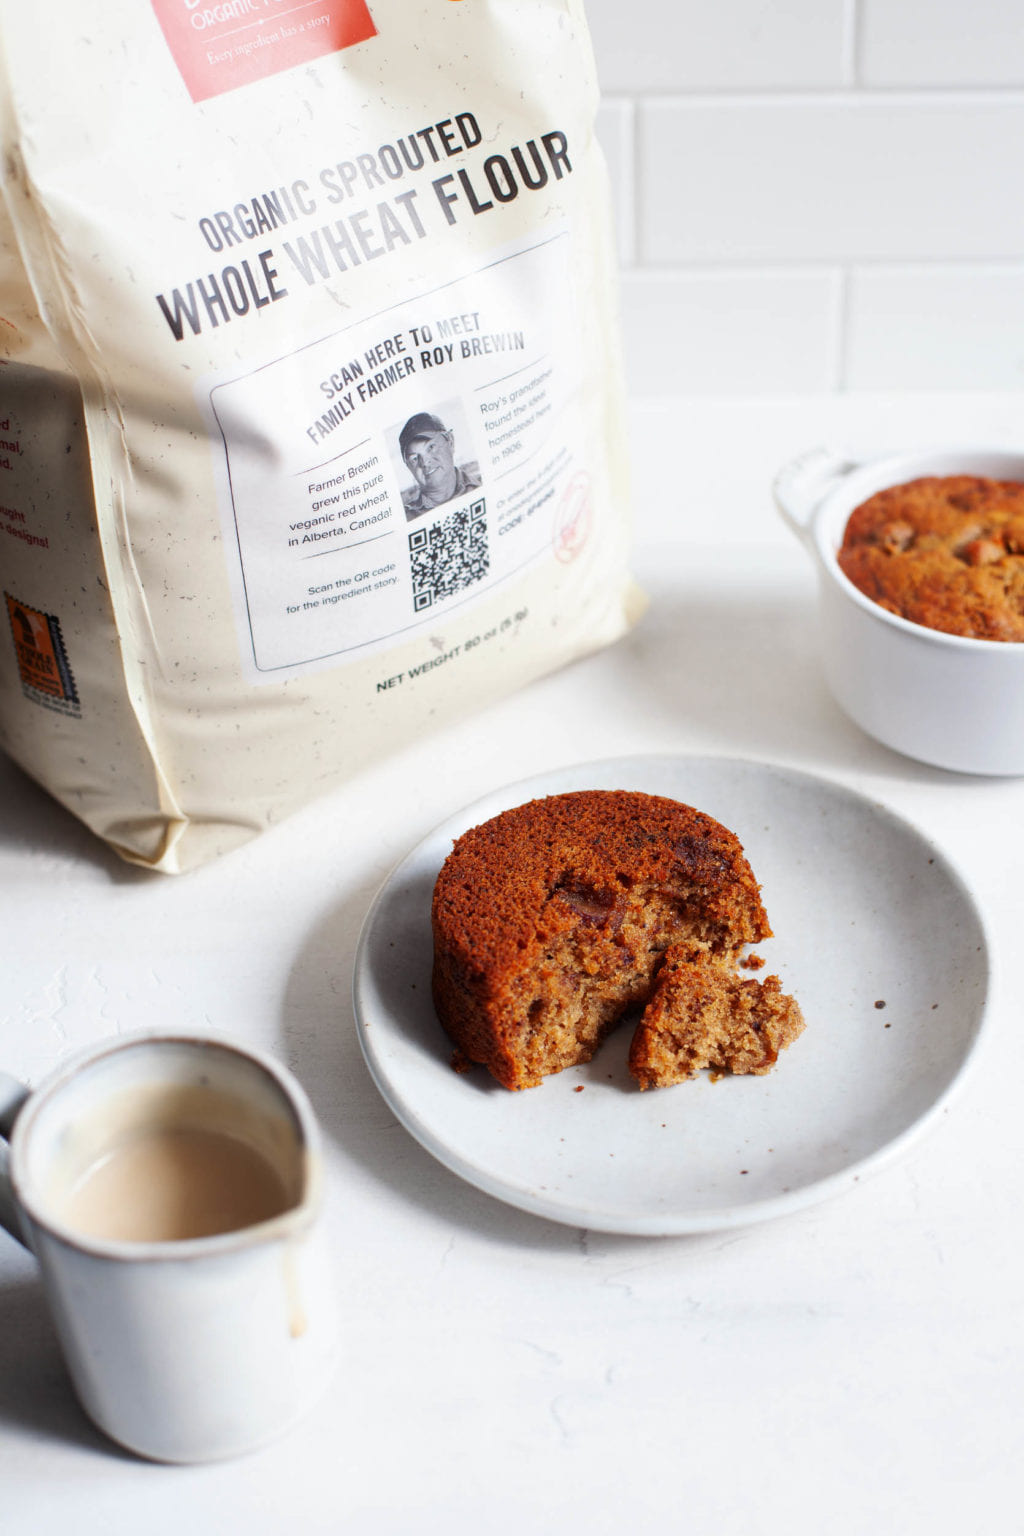 A bag of whole grain flour has been used to make small round cakes, which are placed on dessert plates.